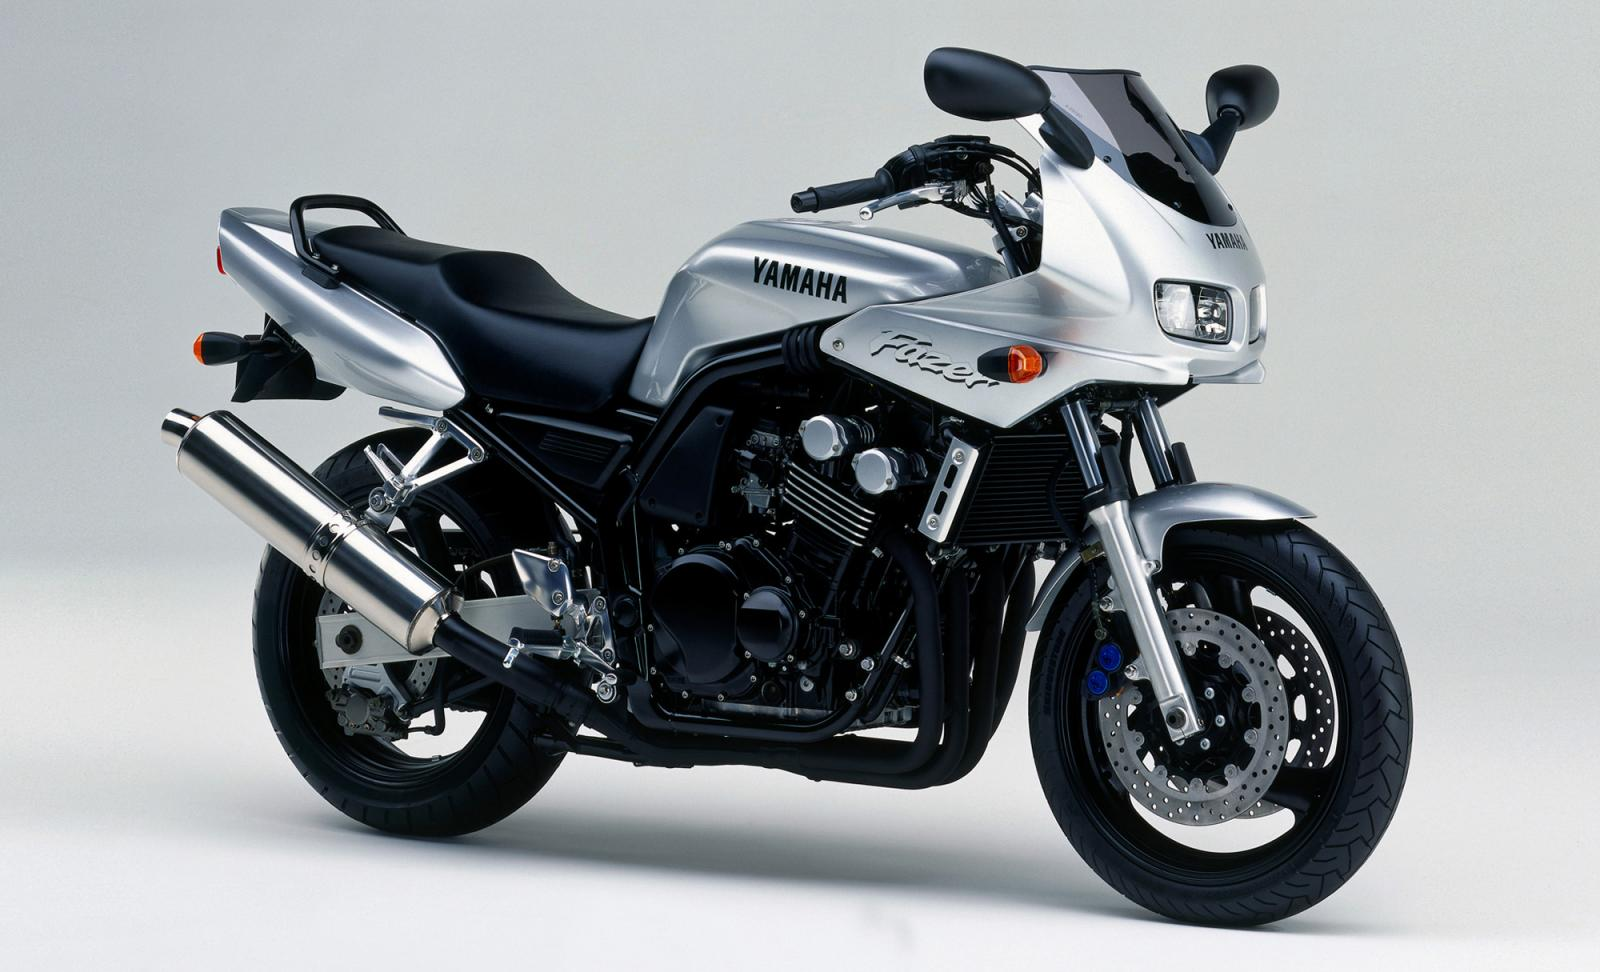 yamaha yamaha fzs 600 fazer moto zombdrive com. Black Bedroom Furniture Sets. Home Design Ideas